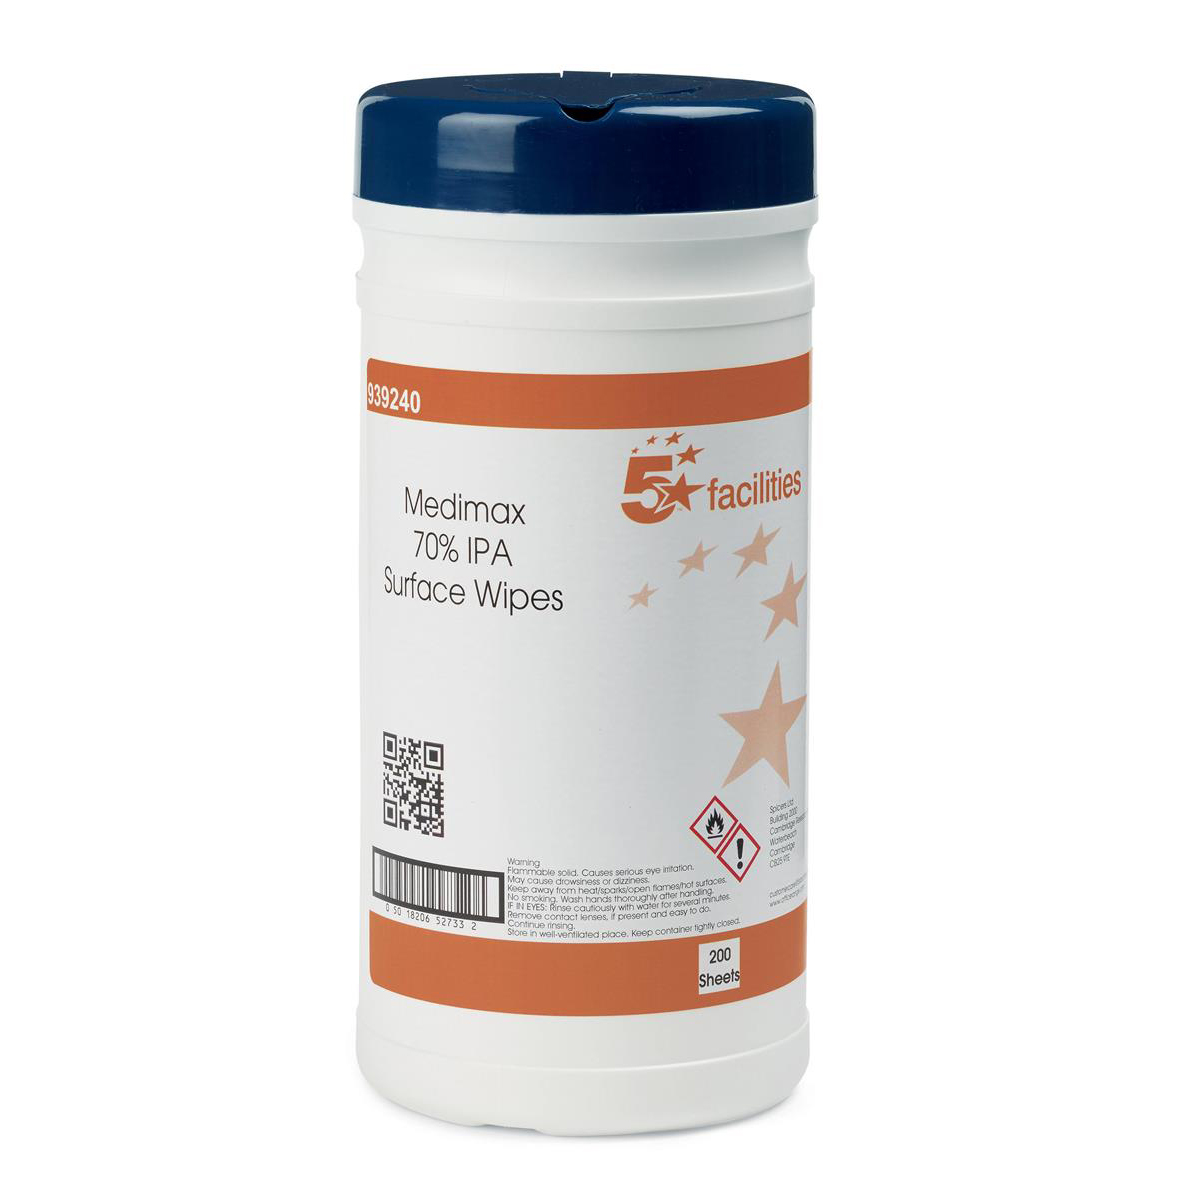 5 Star Facilities Medimax 70 % IPA Surface Disinfectant Wipes Anti-bacterial 20x20cm Tub 200 Sheets